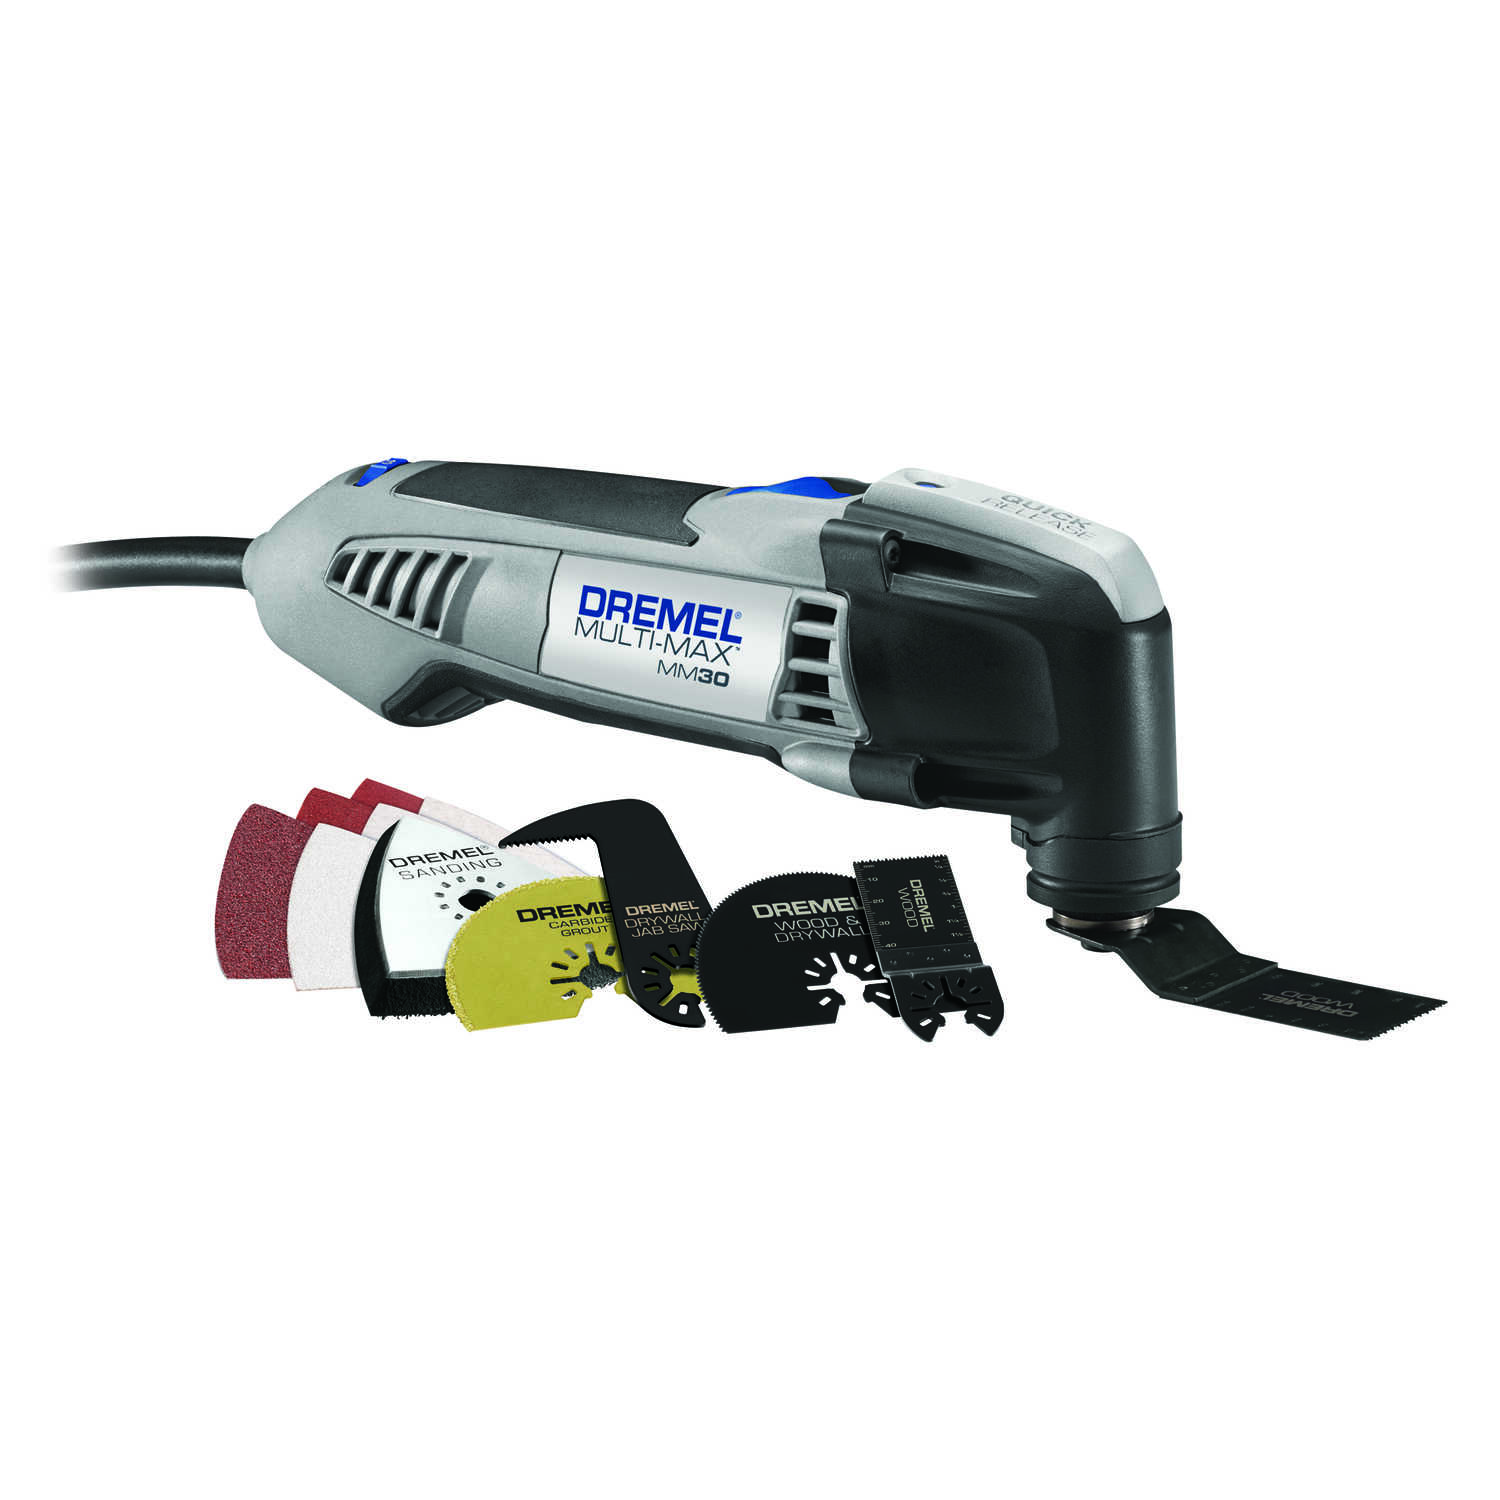 Dremel  Multi-Max  3.3 amps 120 volt Corded  Oscillating Tool  Kit 23000 opm Gray  12 pc.